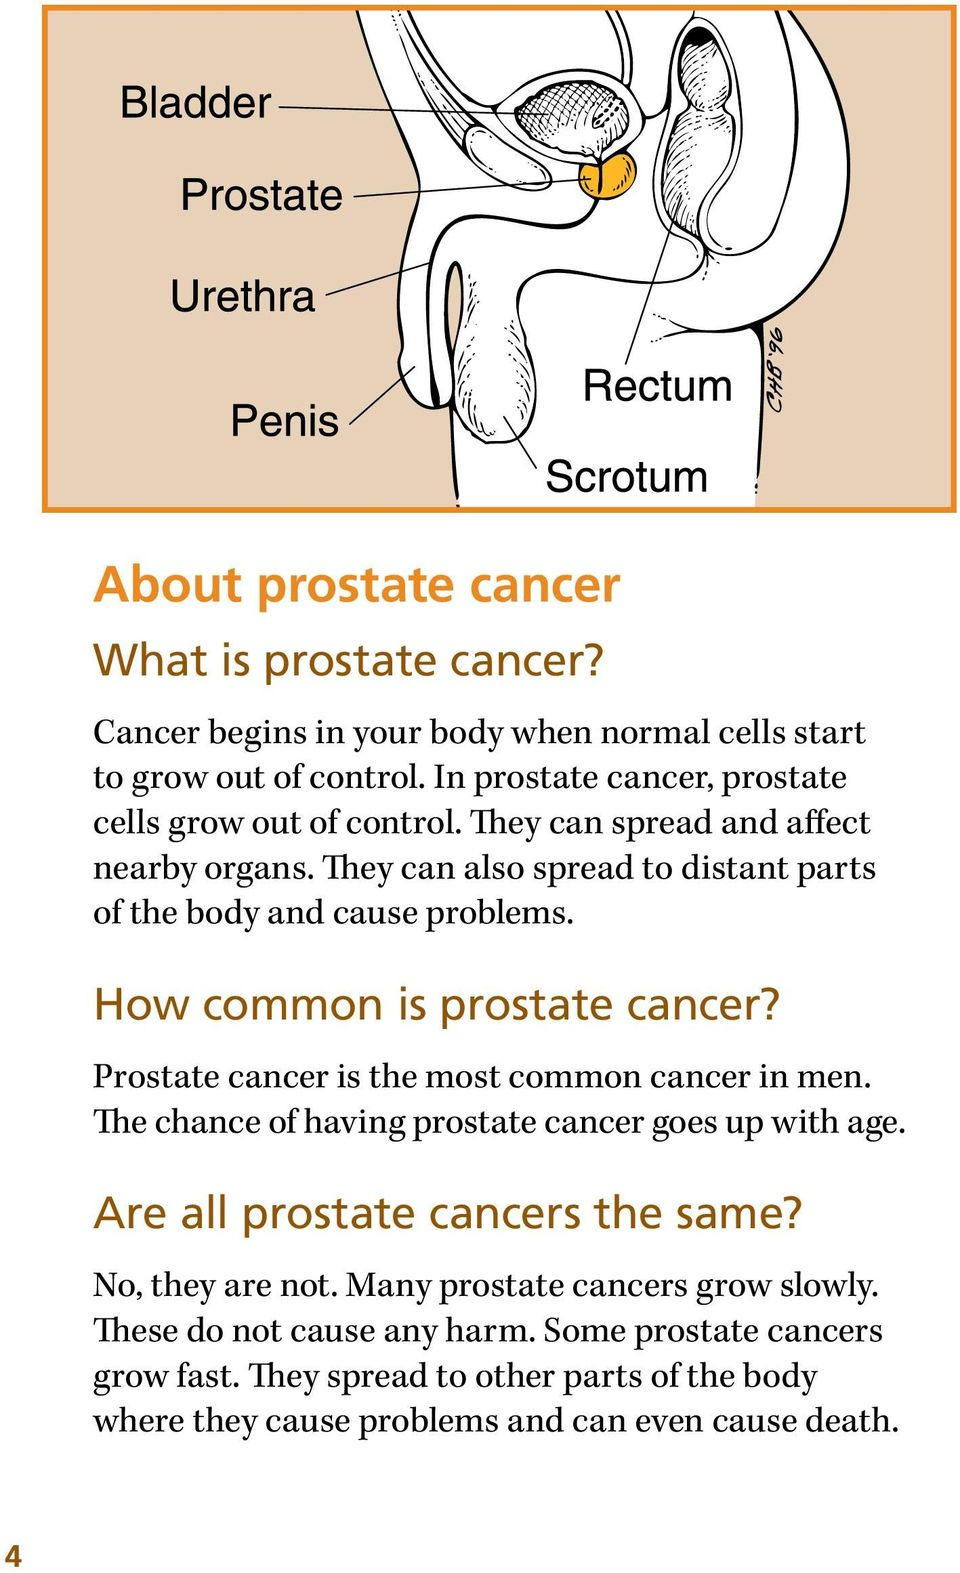 How common is prostate cancer? Prostate cancer is the most common cancer in men. The chance of having prostate cancer goes up with age.